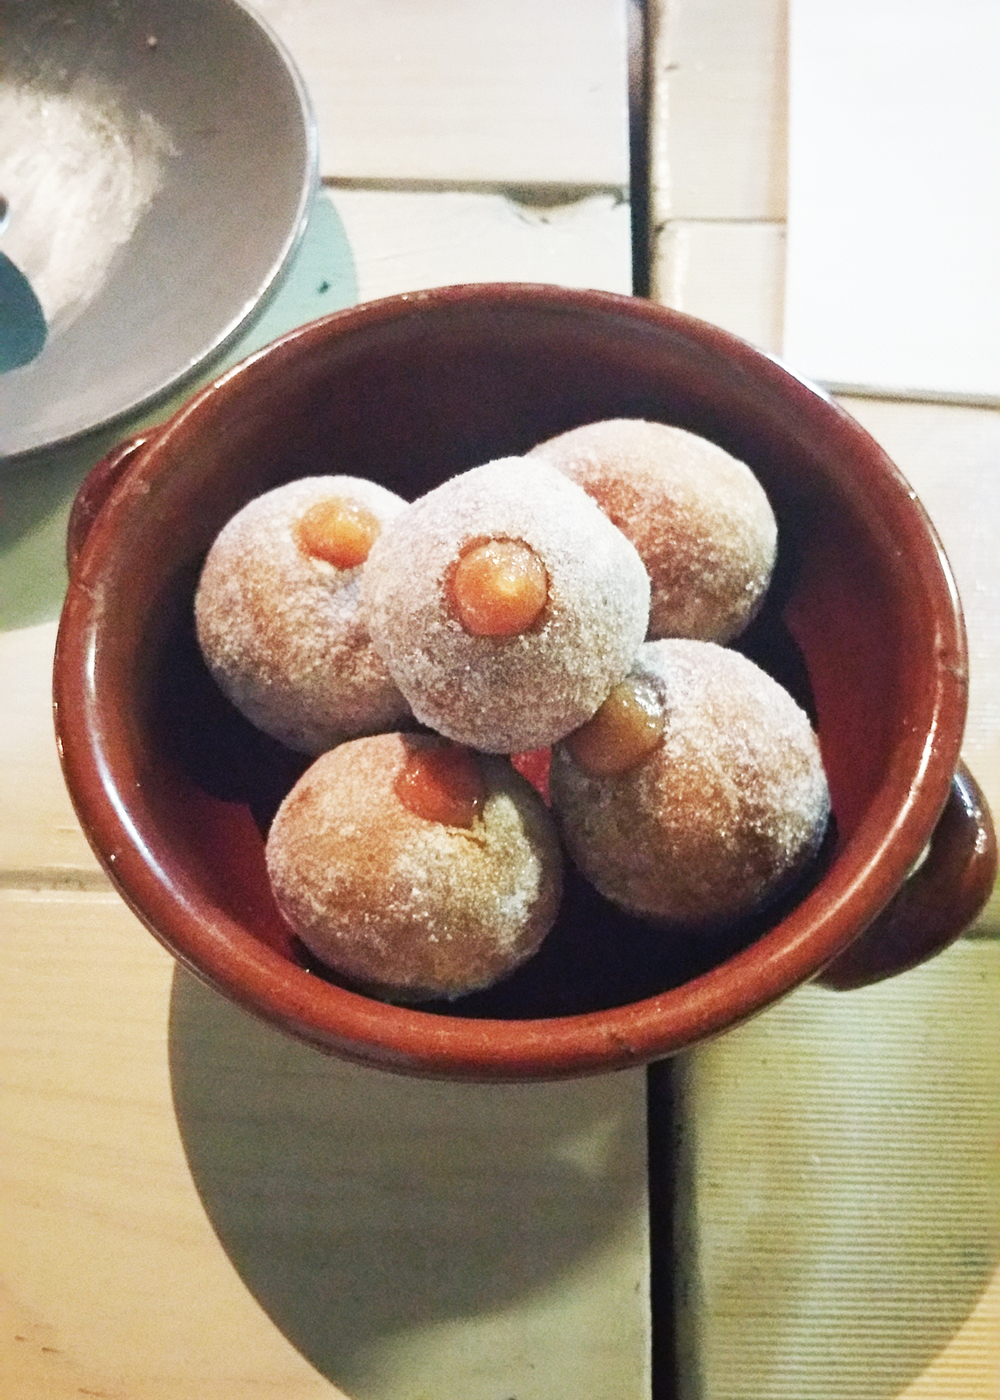 Warm Spanish doughnuts: filled with quince & dusted in spiced sugar.